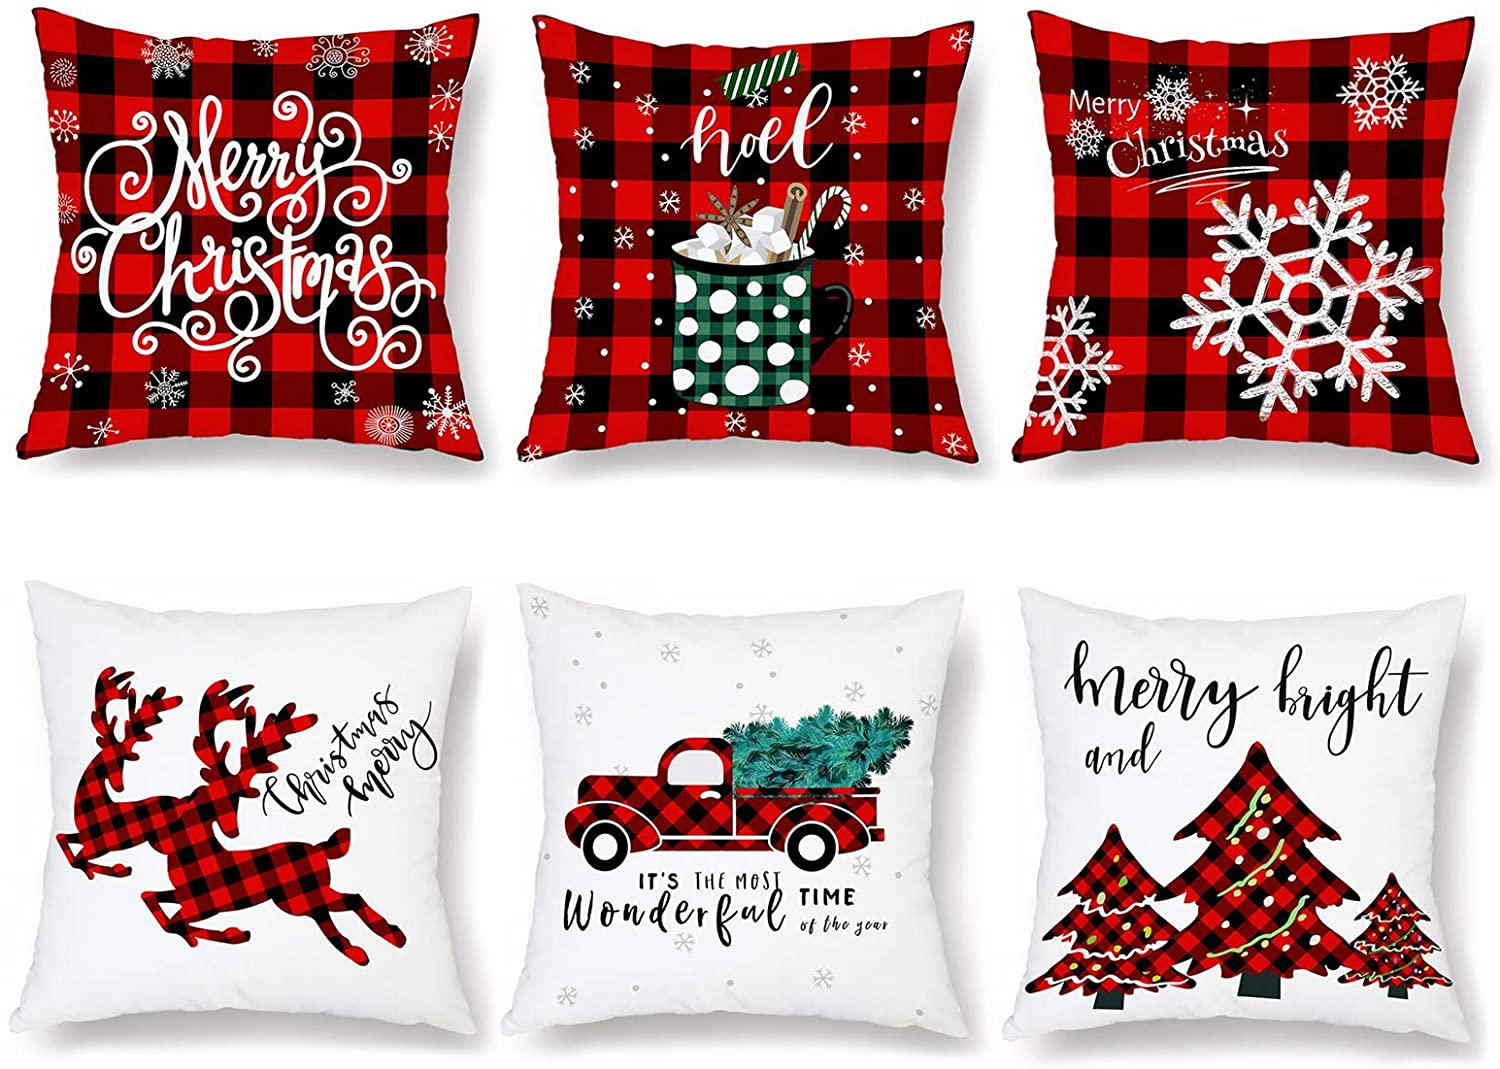 """Jucoan 6 Pack Christmas Throw Pillow Covers, 18"""" x18"""" Decorative Buffalo Plaids Cushion Cover, Digital Print Cotton Linen Squared Pillowcase for Home Sofa Bed Couch Xmas Gifts"""